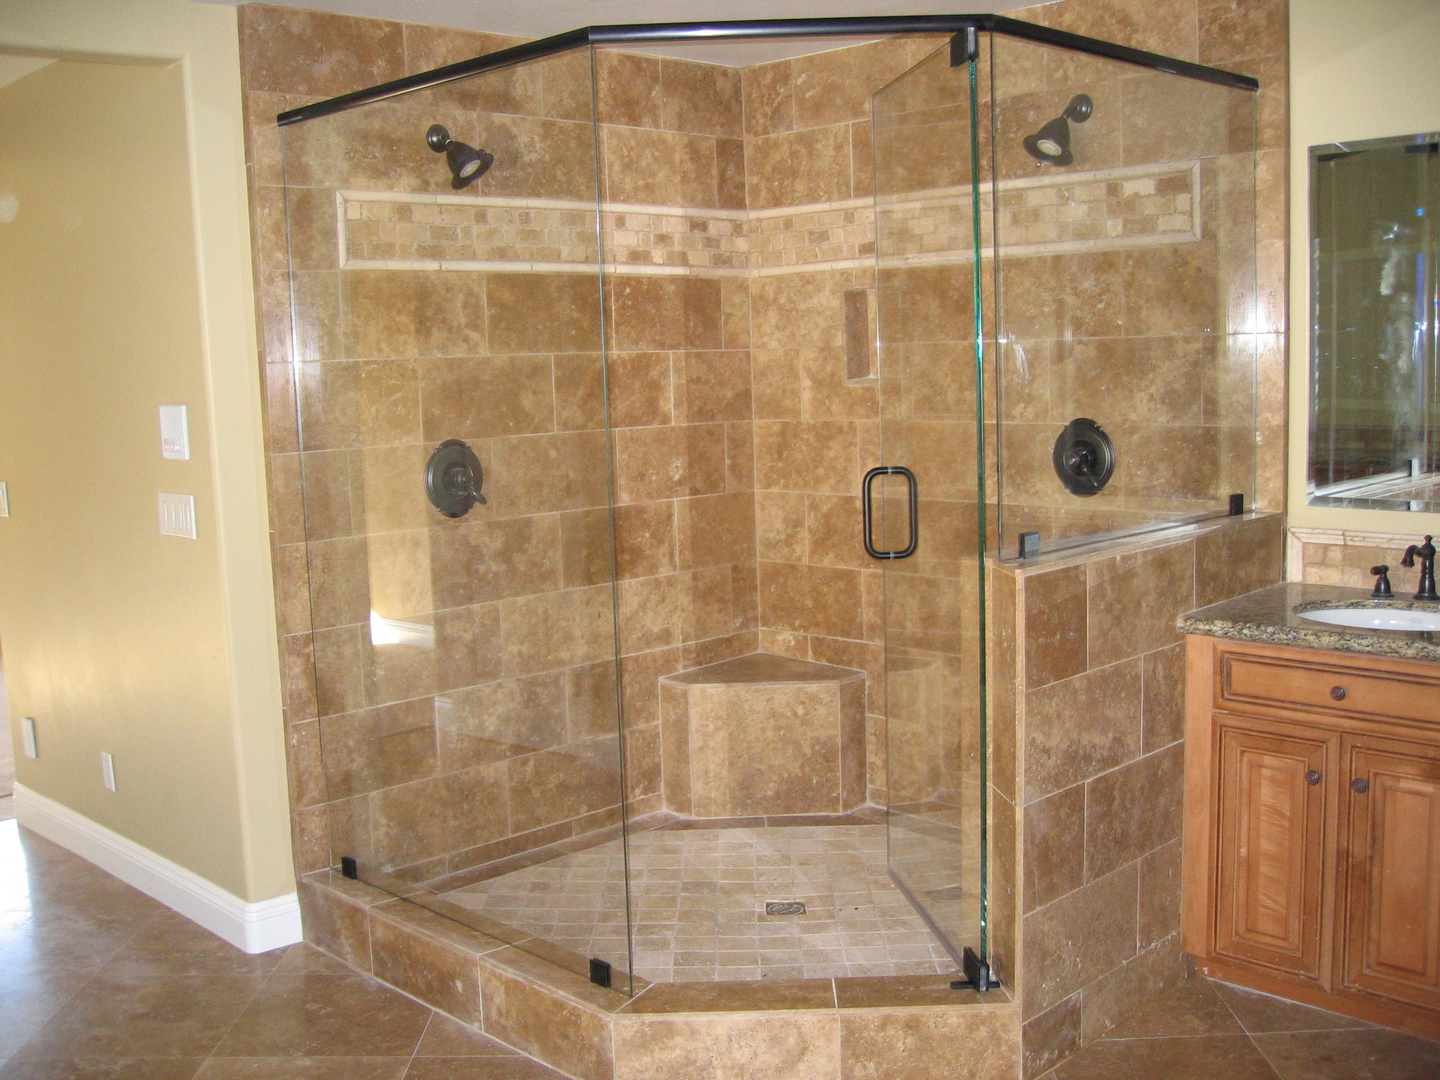 Add A Shower Door Company In Omaha Ne 68144 Services